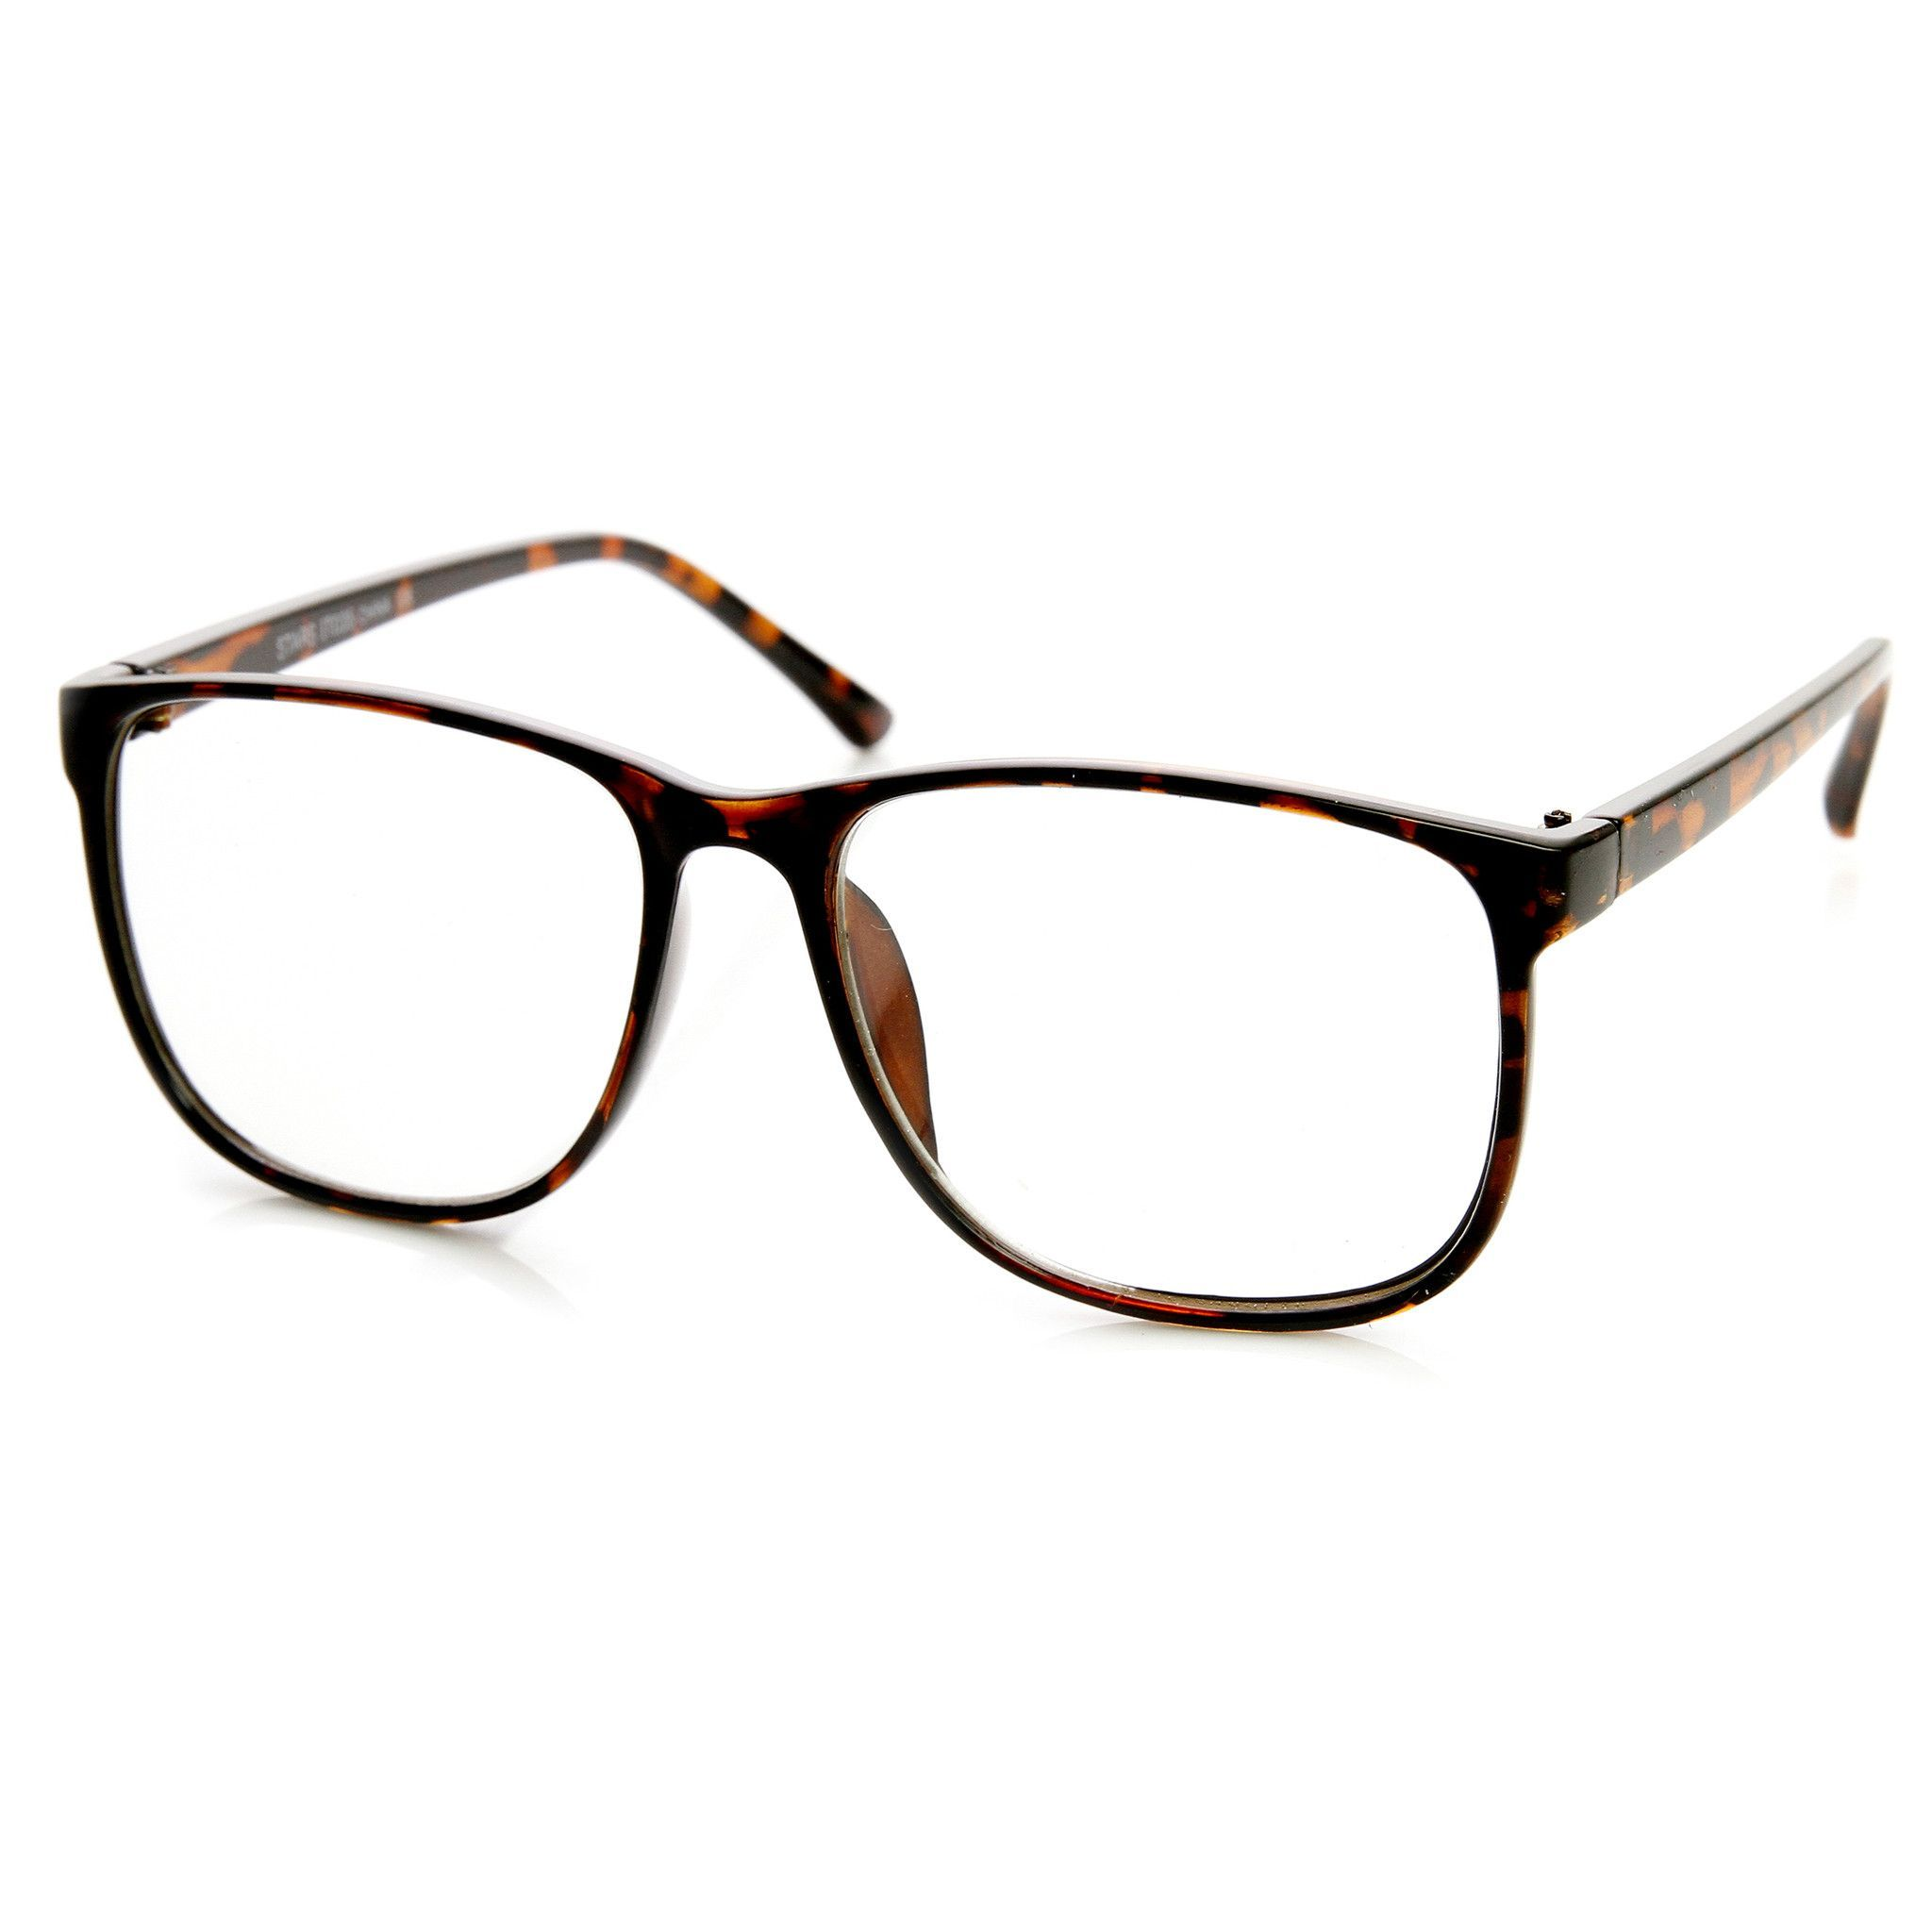 Large Retro Nerd Hipster Fashion Clear Lens Glasses 9339 | Brille